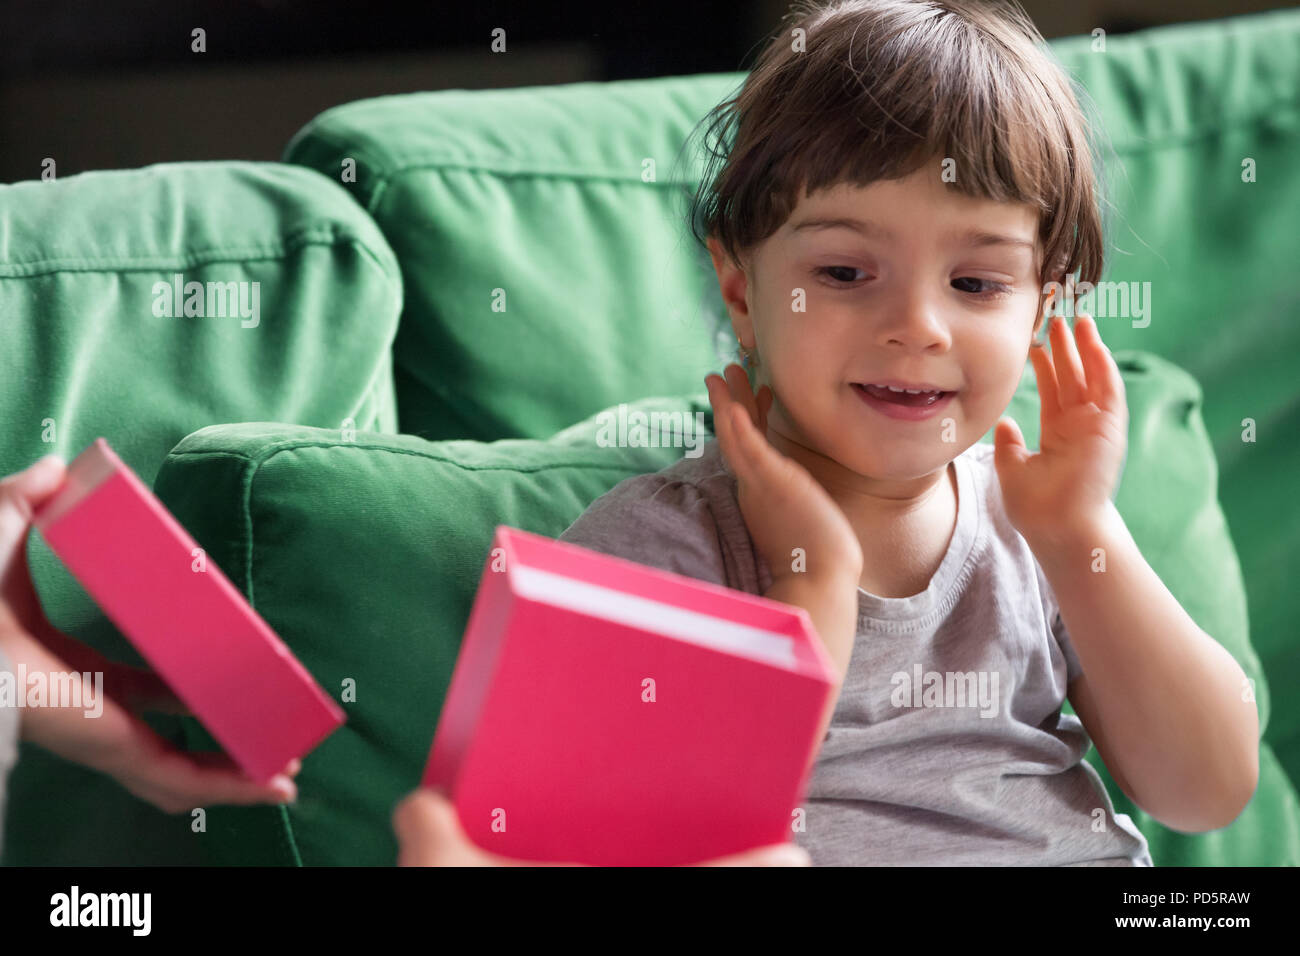 Curious shy kid girl looking inside gift box with present - Stock Image